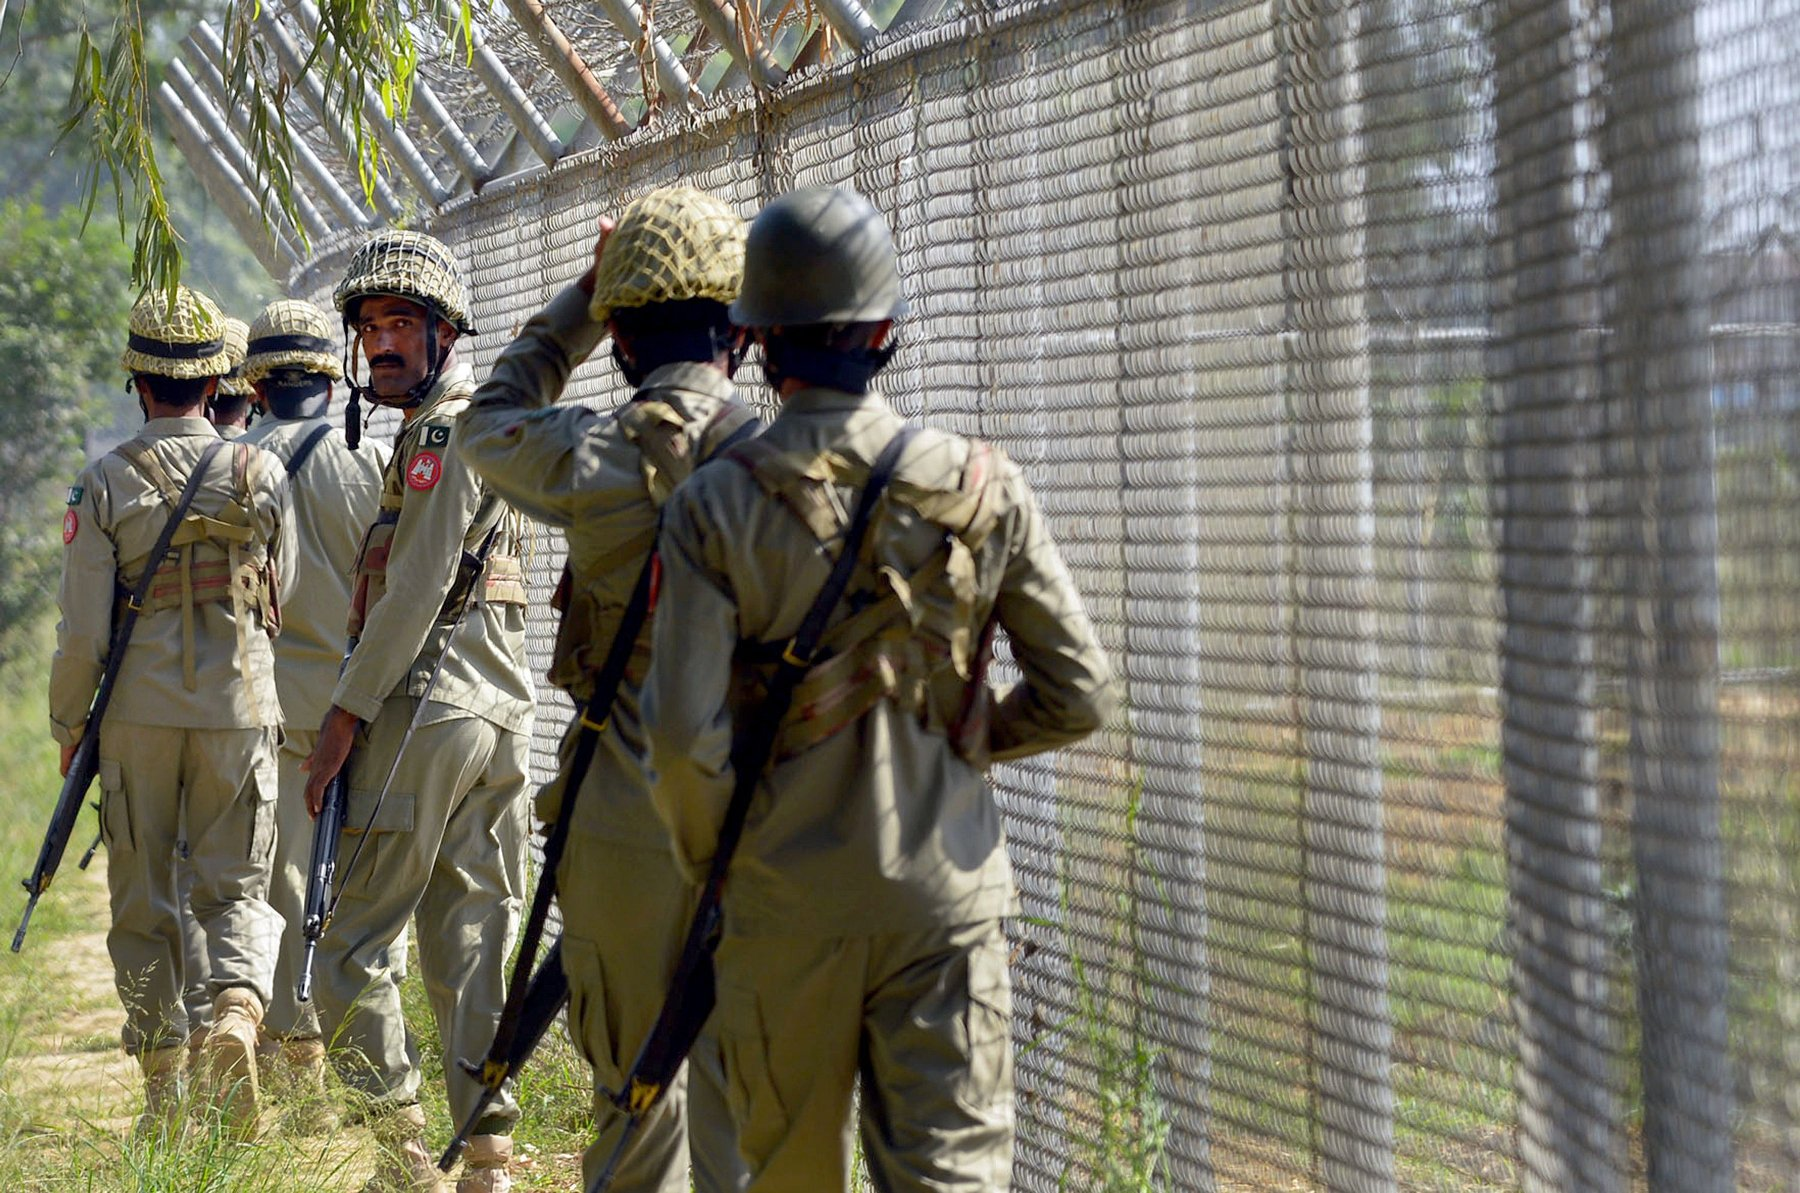 fo lodges protest with indian deputy high commissioner over loc firing